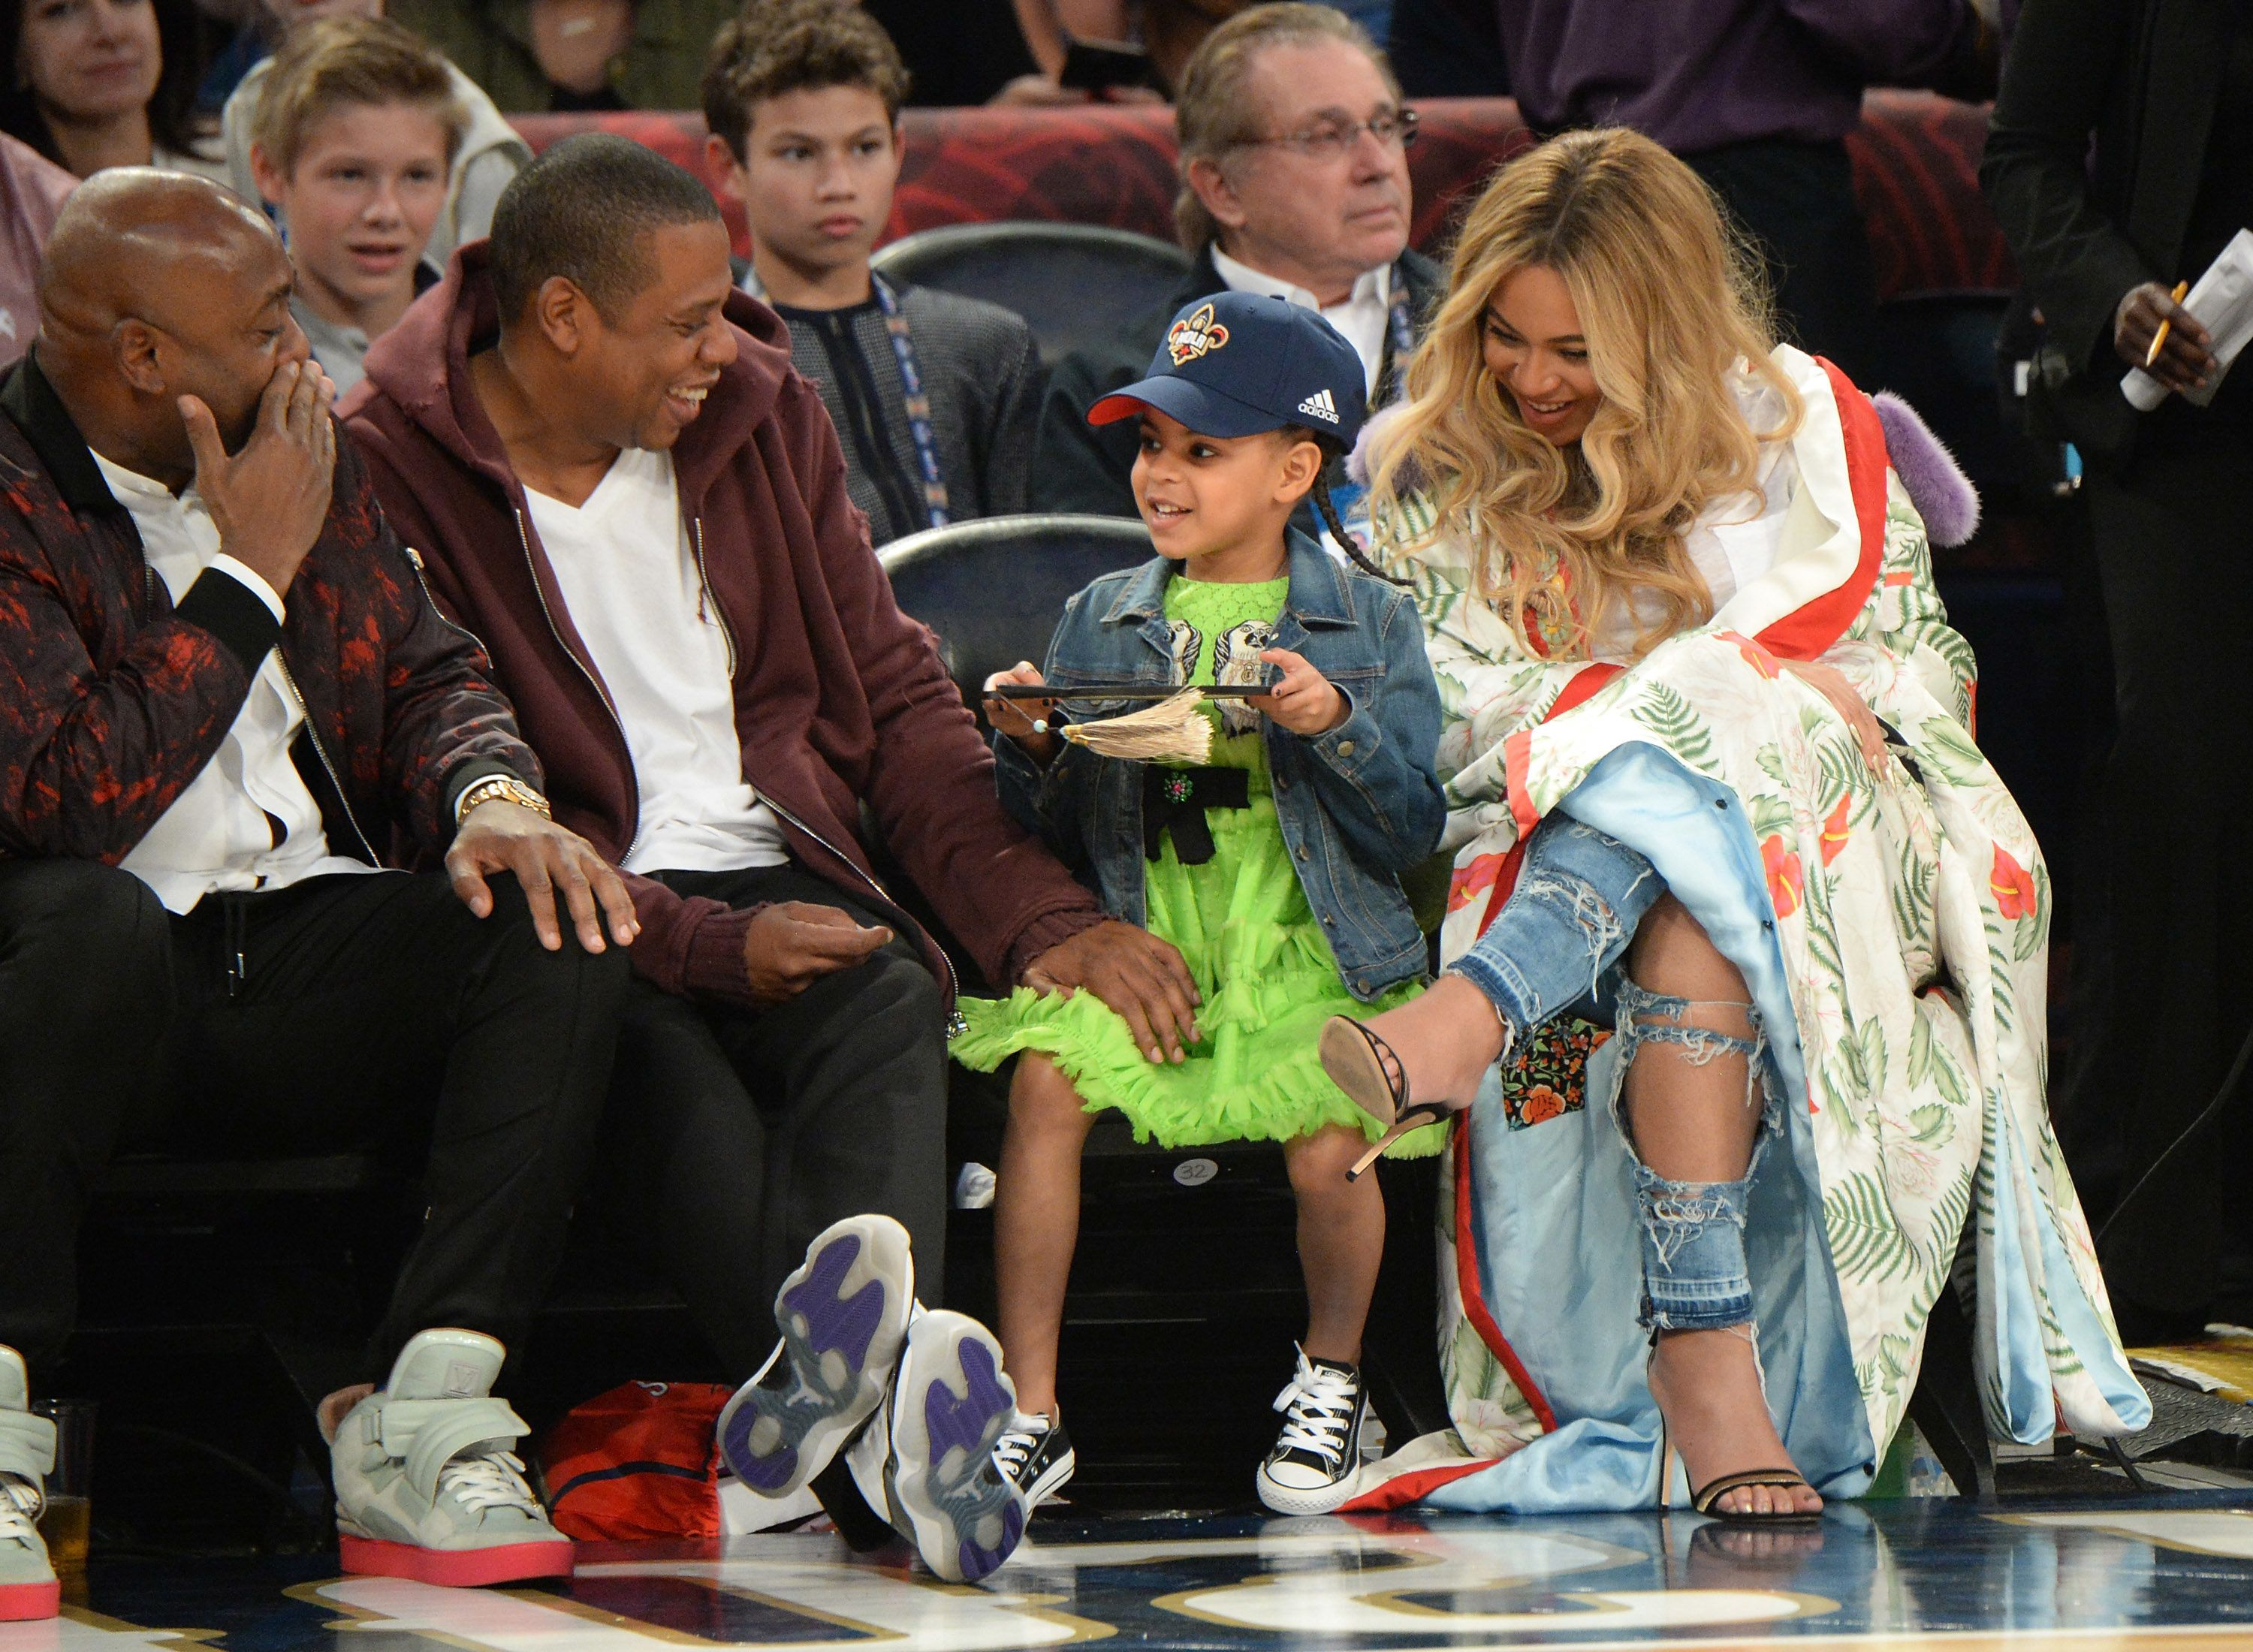 NEW ORLEANS, LA - FEBRUARY 19:  Jay Z, Blue Ivy Carter and Beyonce Knowles attend the 66th NBA All-Star Game at Smoothie King Center on February 19, 2017 in New Orleans, Louisiana.  (Photo by Kevin Mazur/Getty Images)